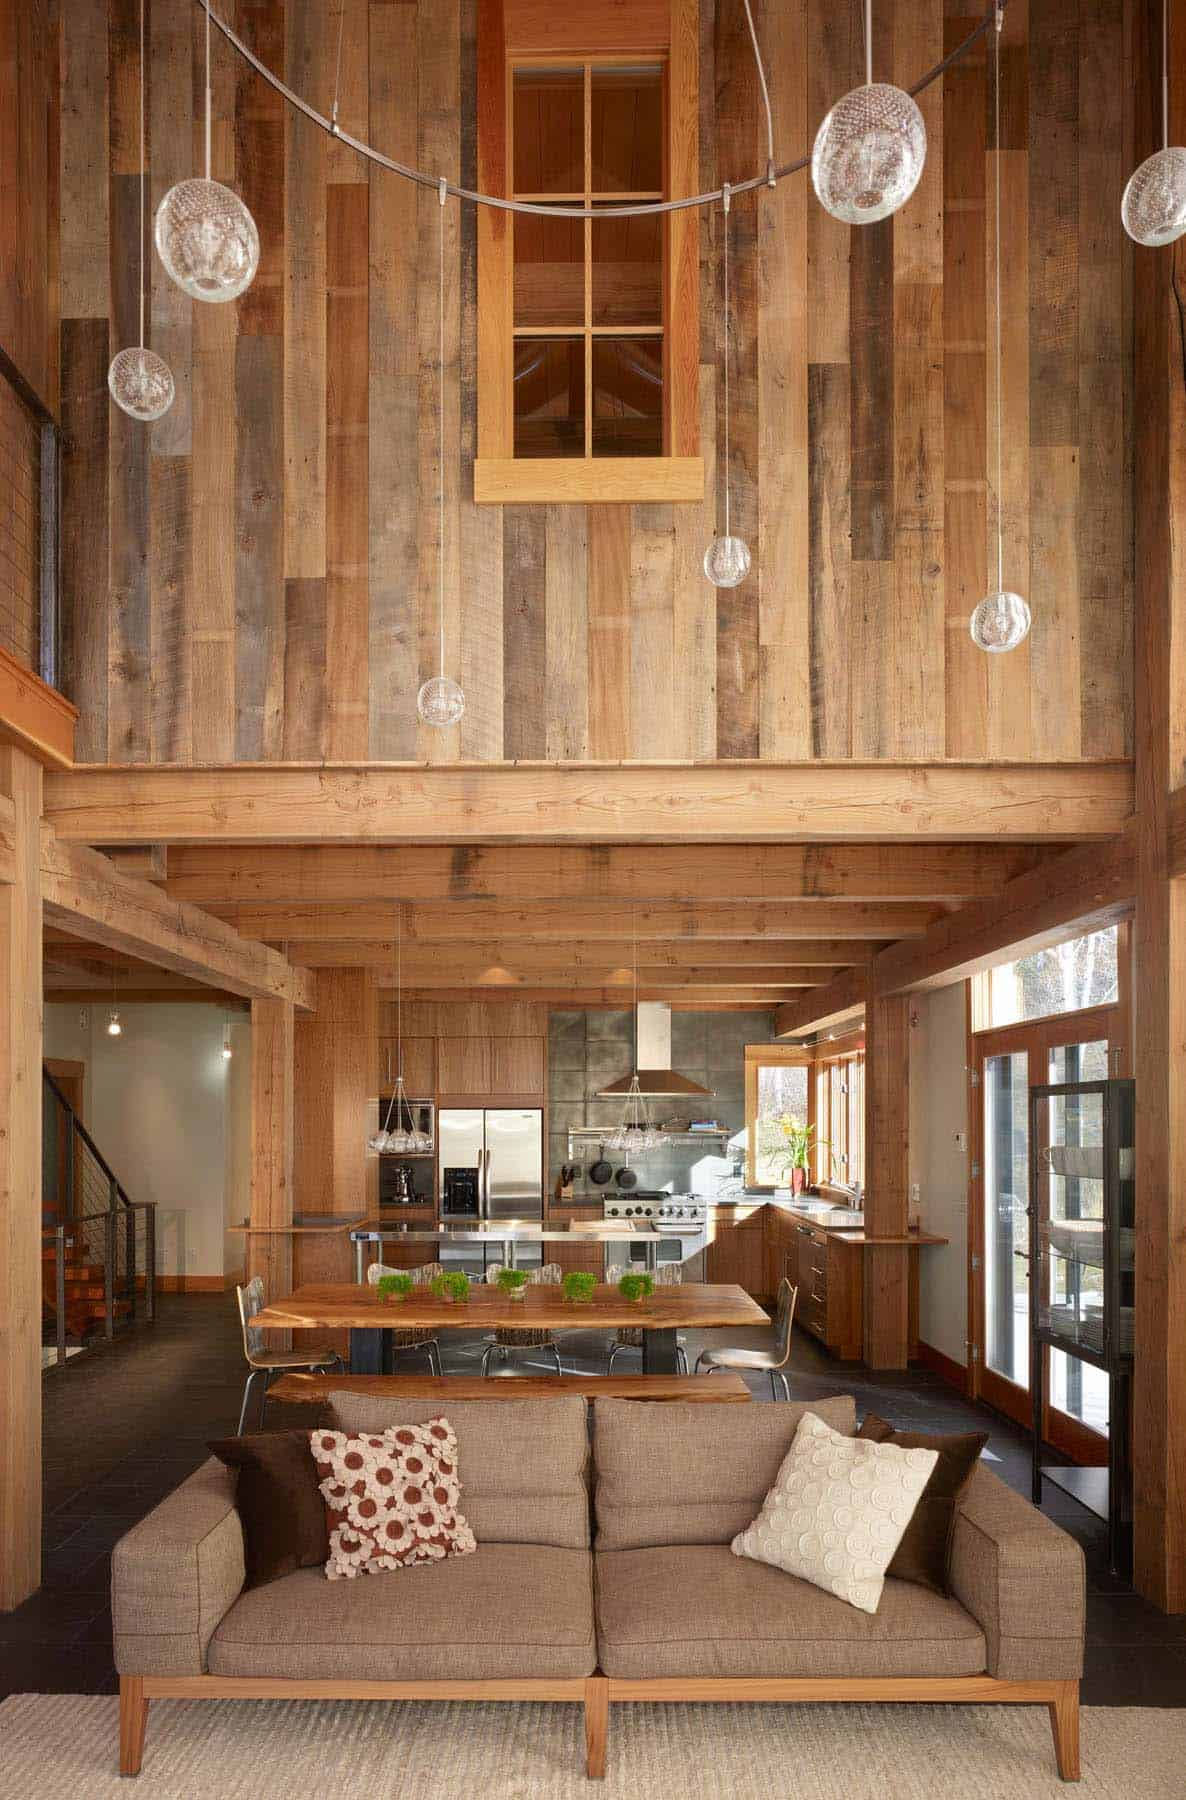 Contemporary Eco-Friendly Home-Robert Hawkins Architects-06-1 Kindesign